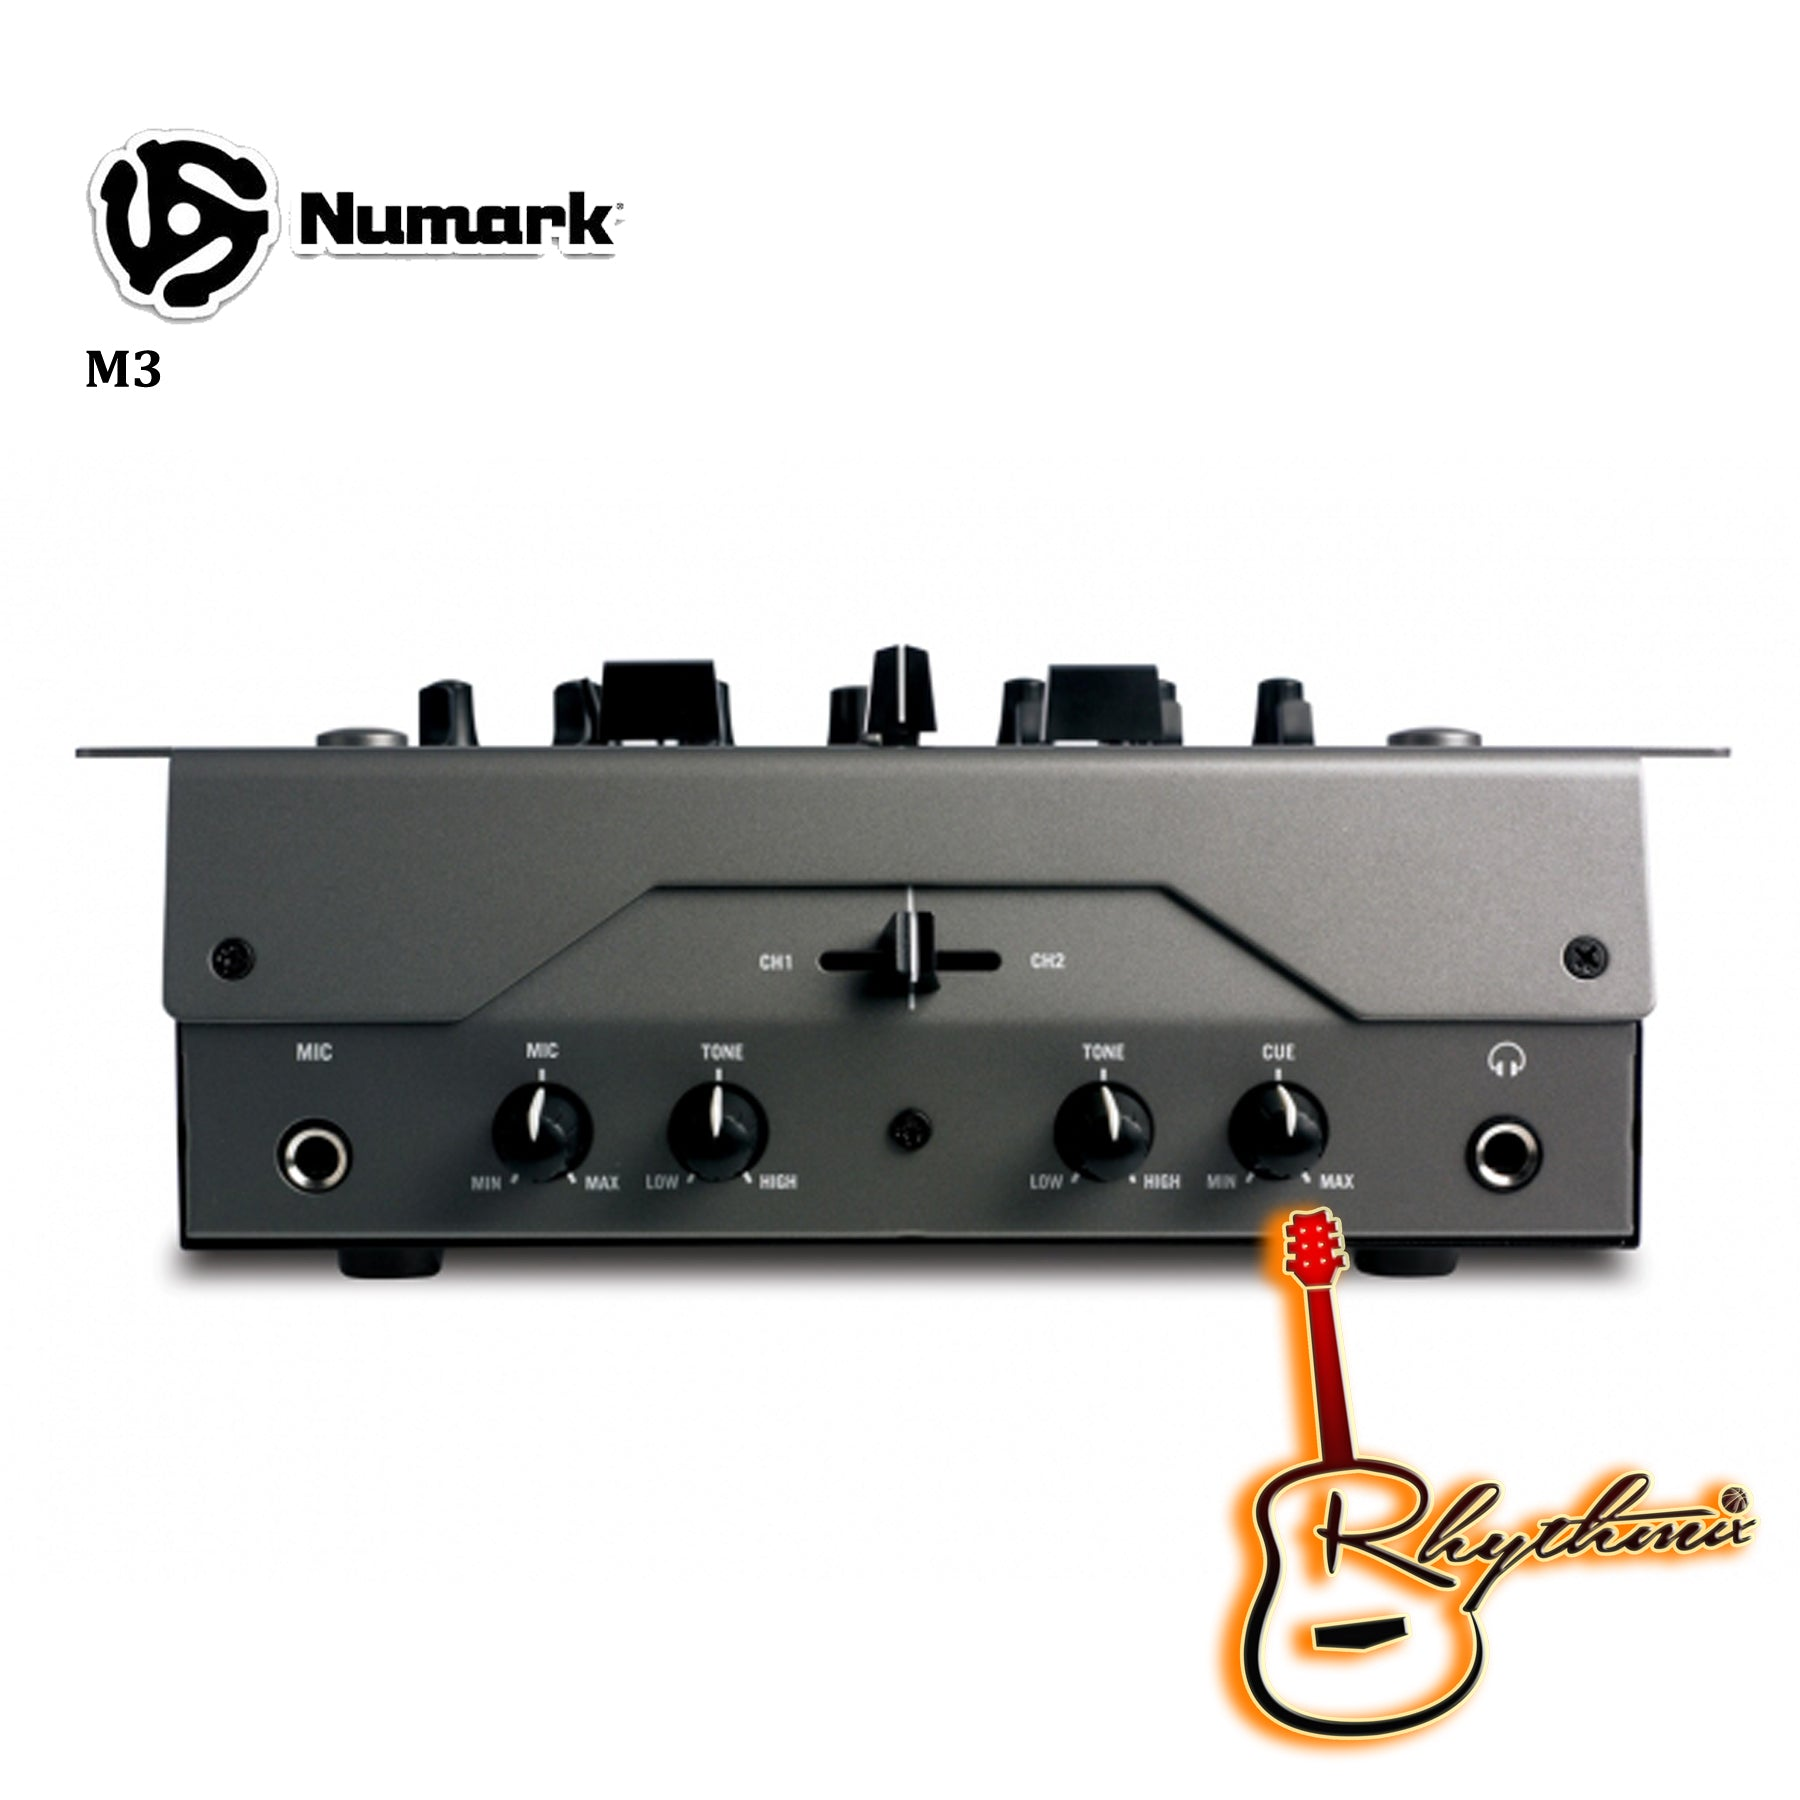 Numark M3 2-channel Tabletop DJ Mixer with Phono/Line RCA